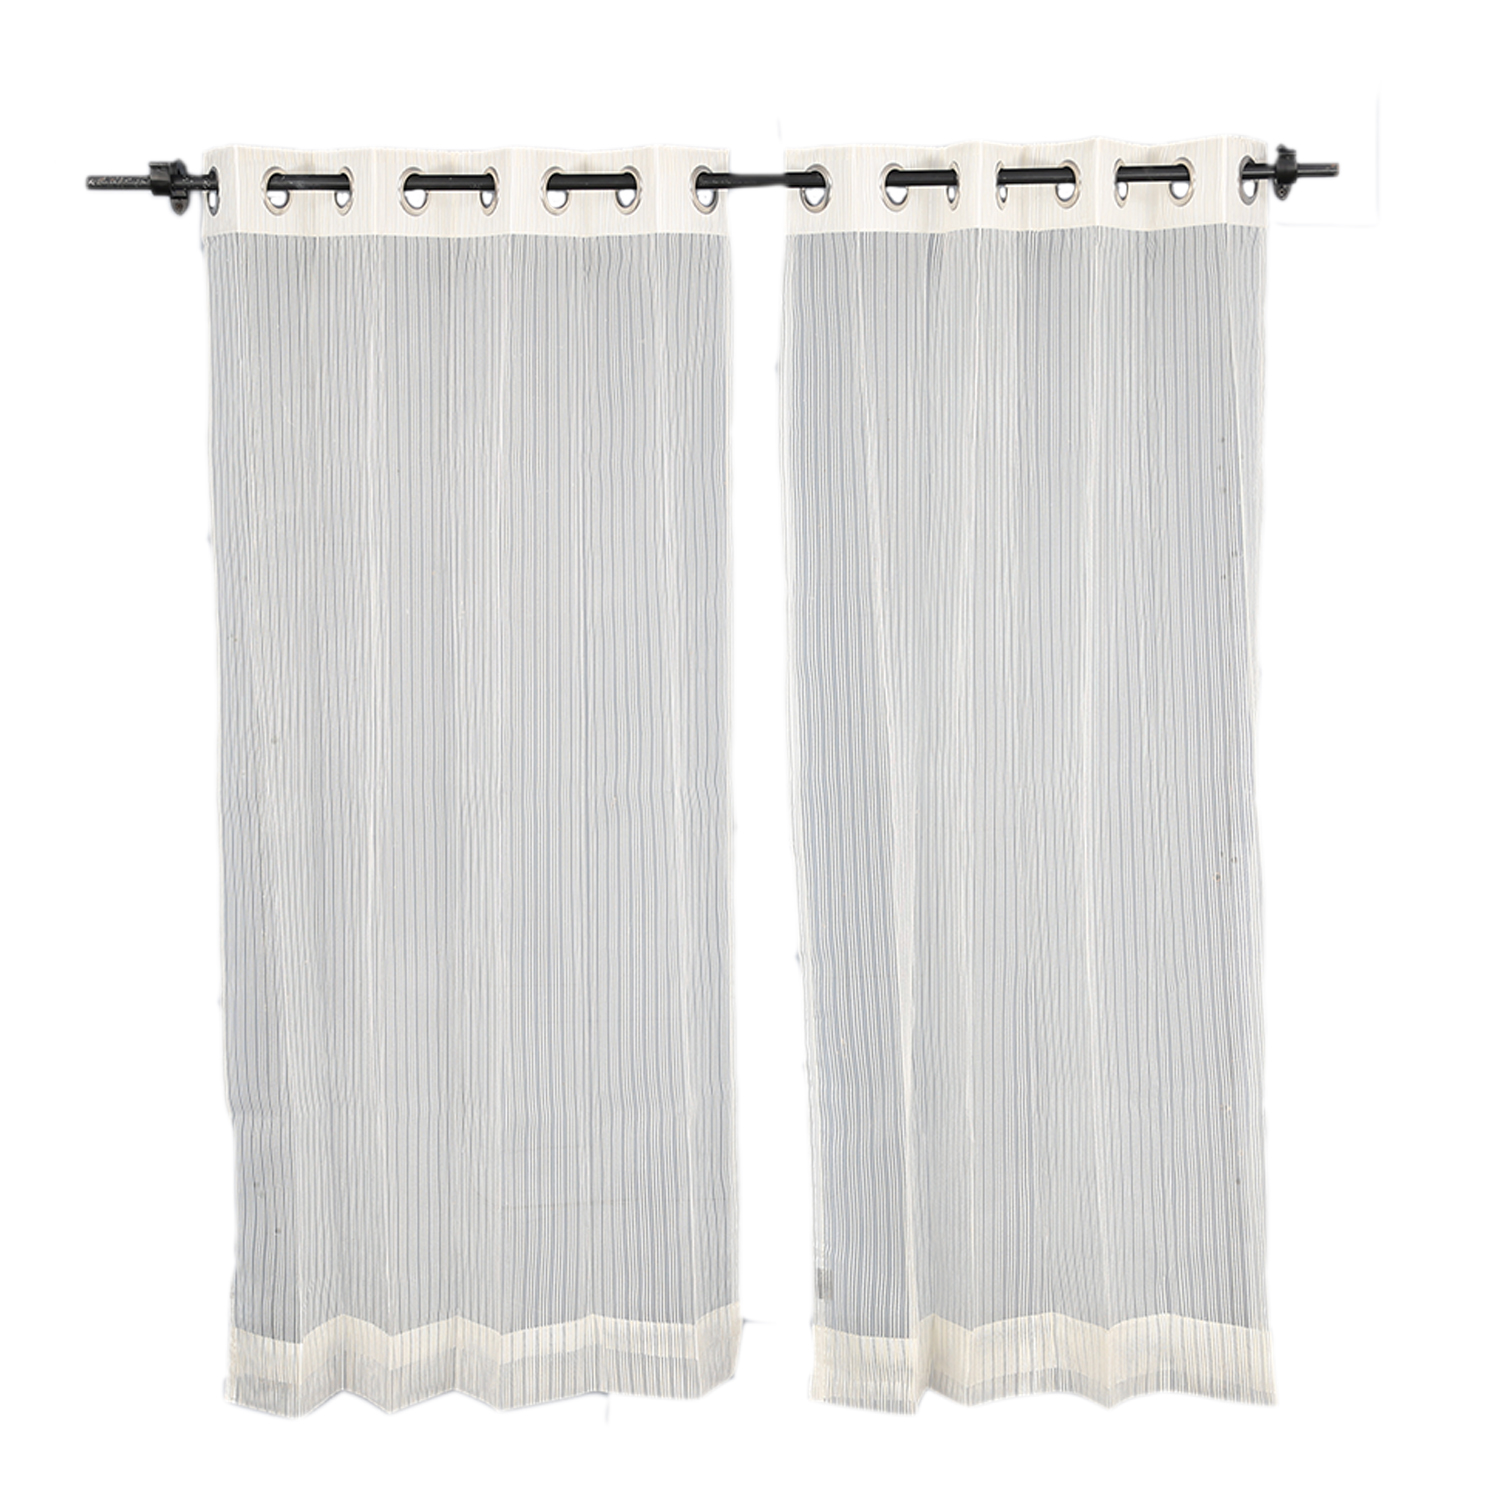 Sheer Window Curtain SIA Off white Polyester Sheer Curtains in Off White Colour by Living Essence